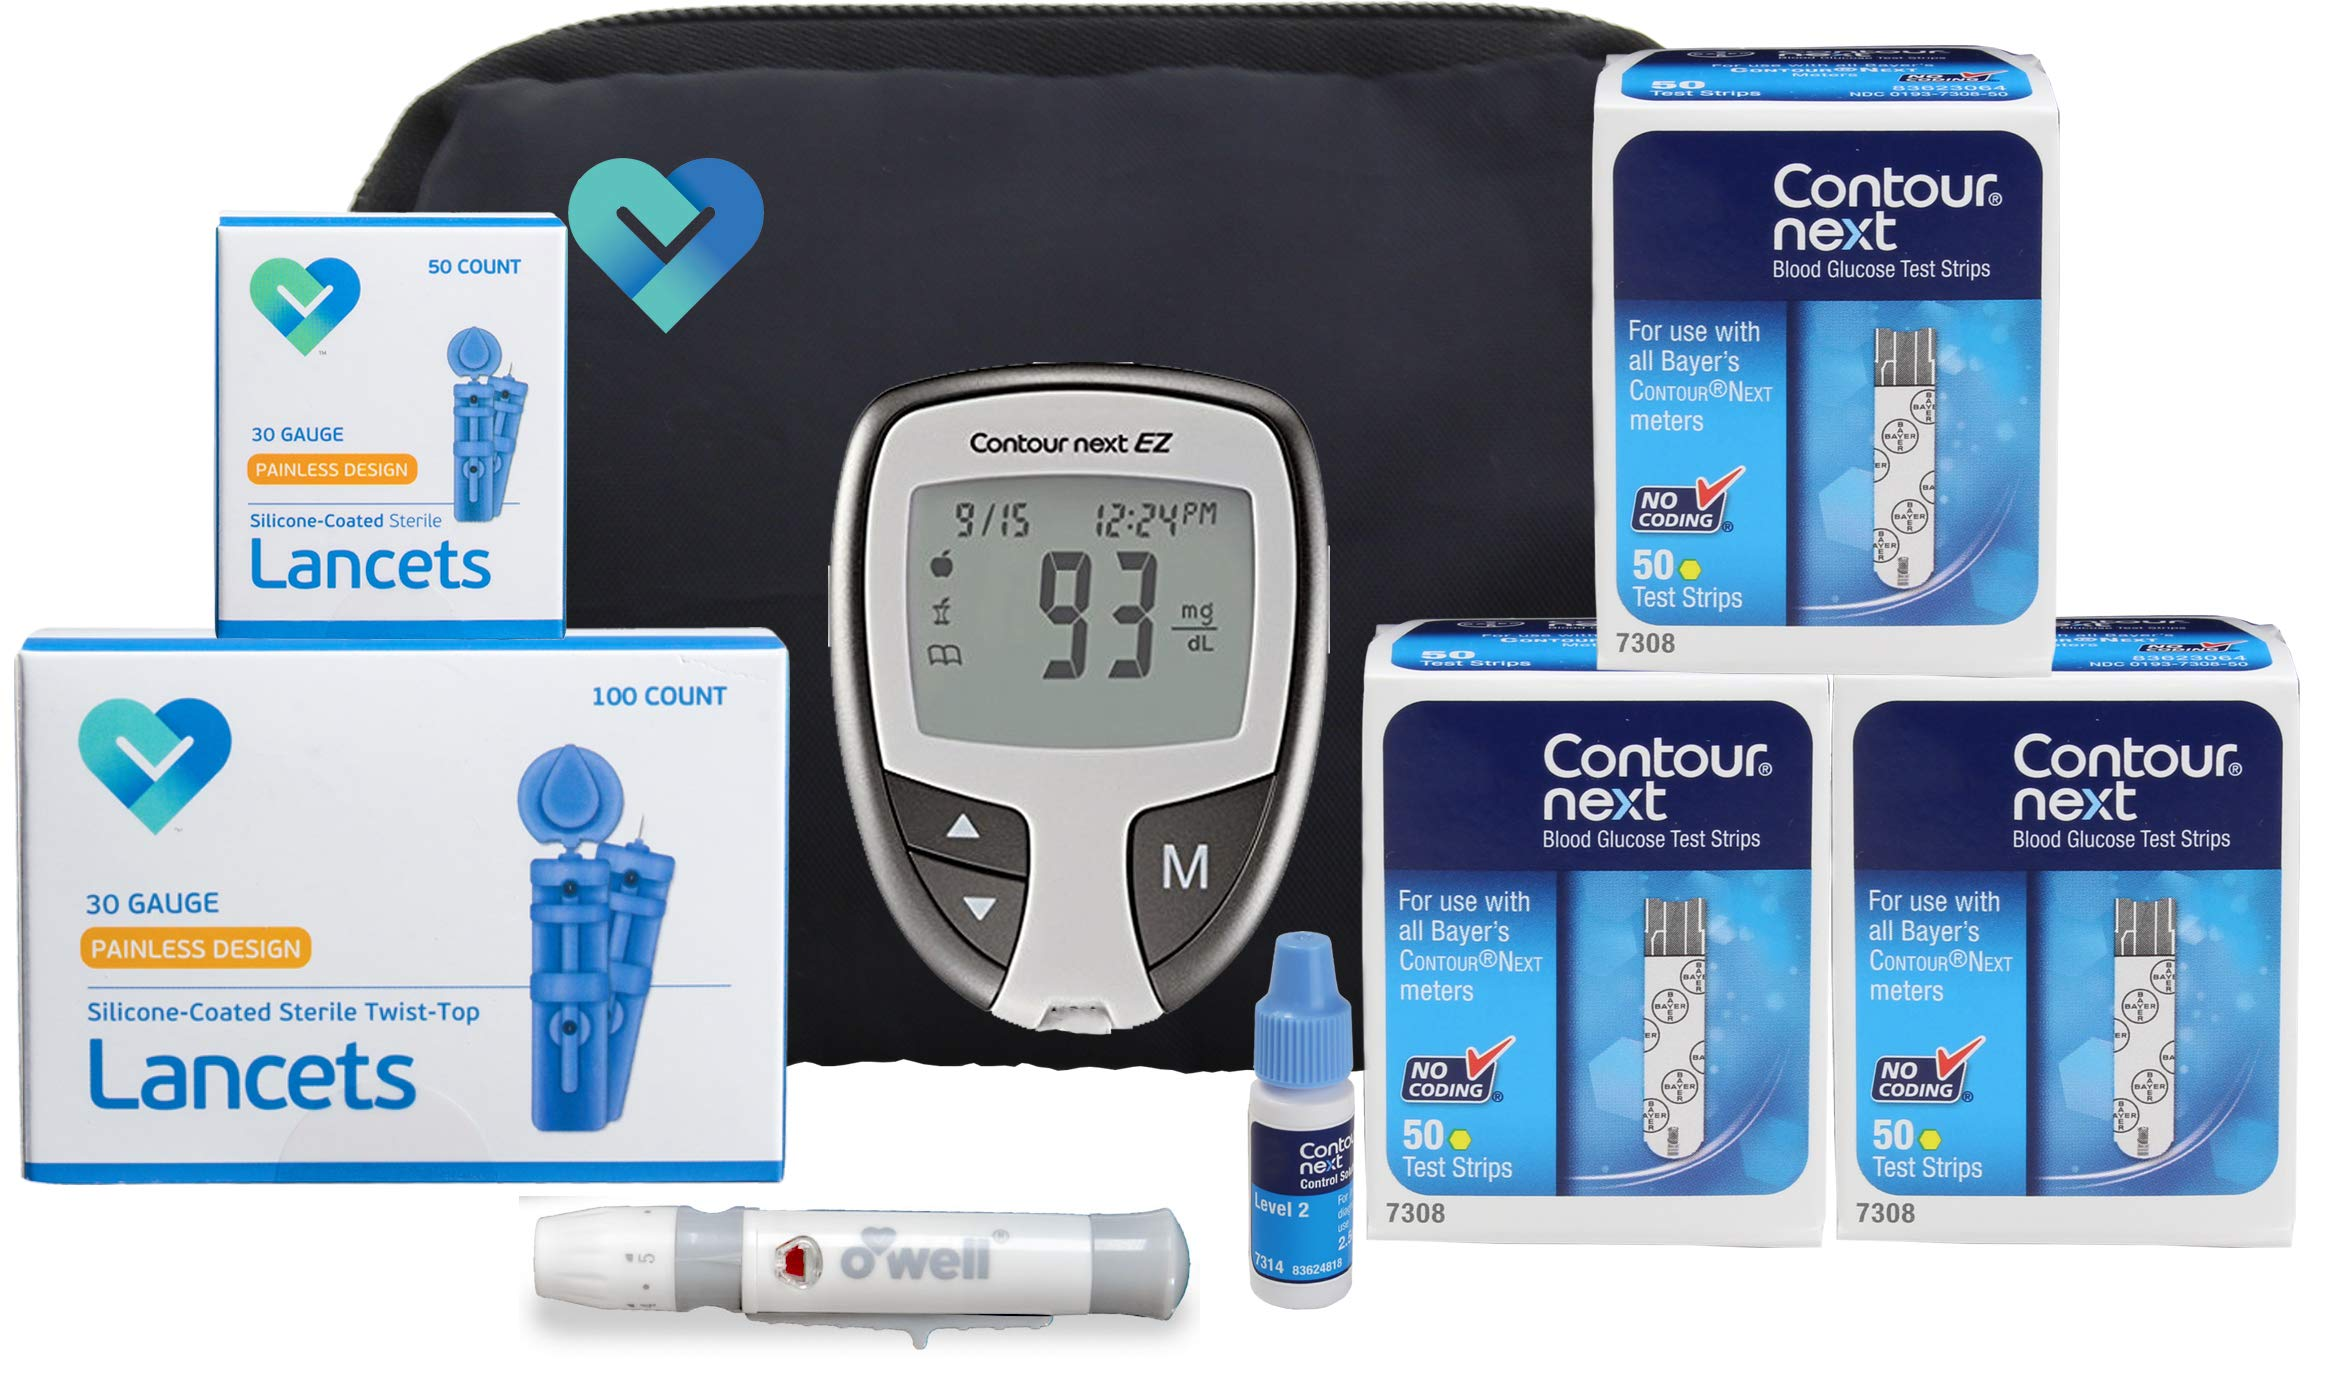 O'WELL Contour NEXT EZ Diabetes Testing Kit | Contour NEXT EZ Meter, 150 Contour NEXT Blood Glucose Test Strips, 150 Lancets, Lancing Device, Control Solution, Log Book, User Manual & Carry Case by OWell (Image #7)